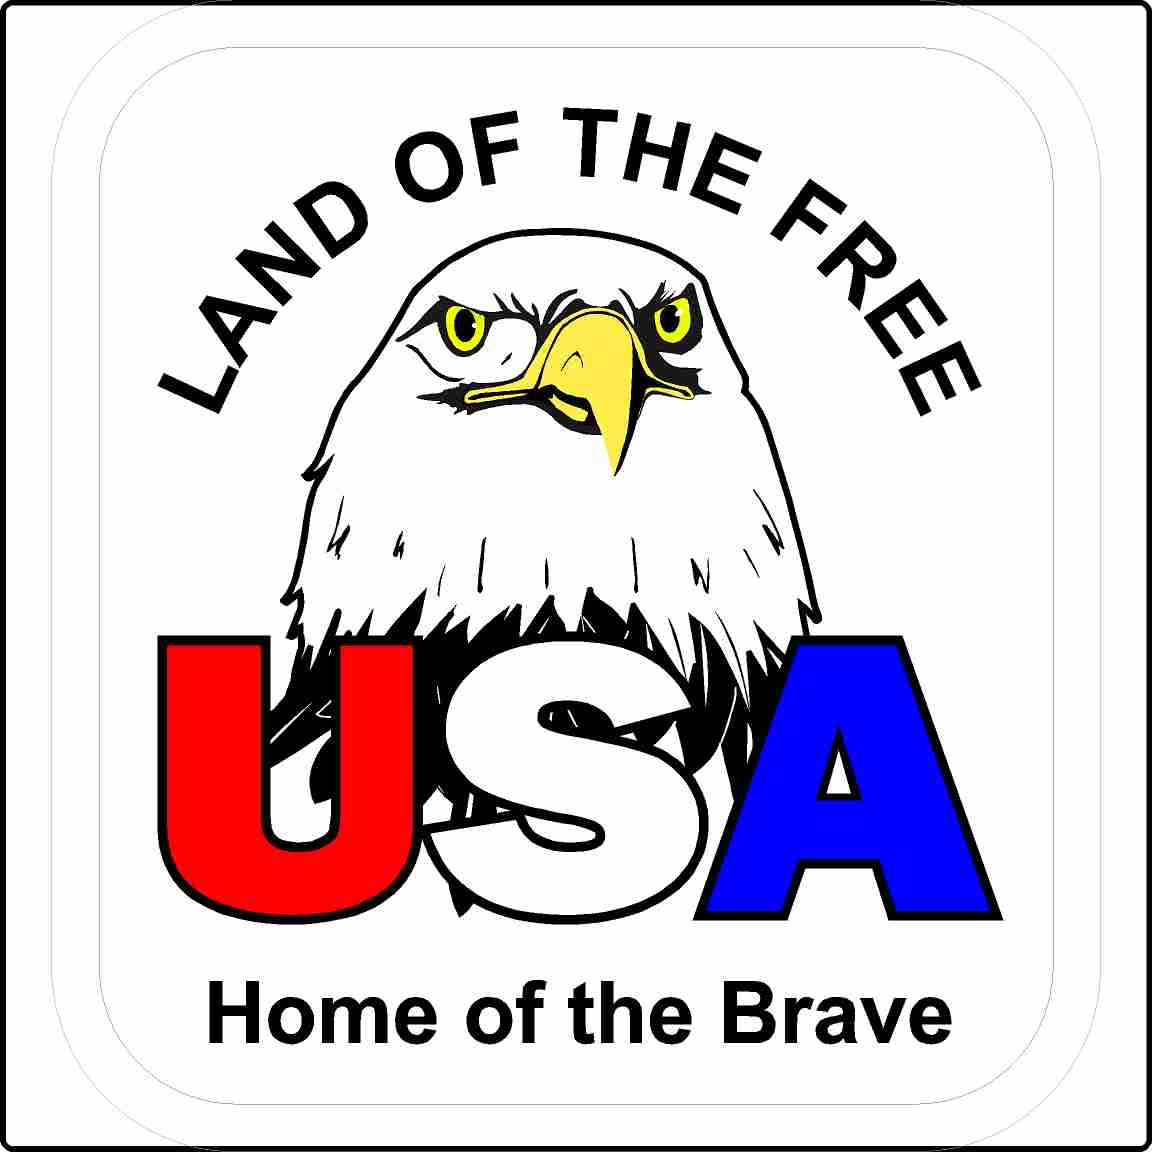 USA Land of the Free Home of the Brave Sticker